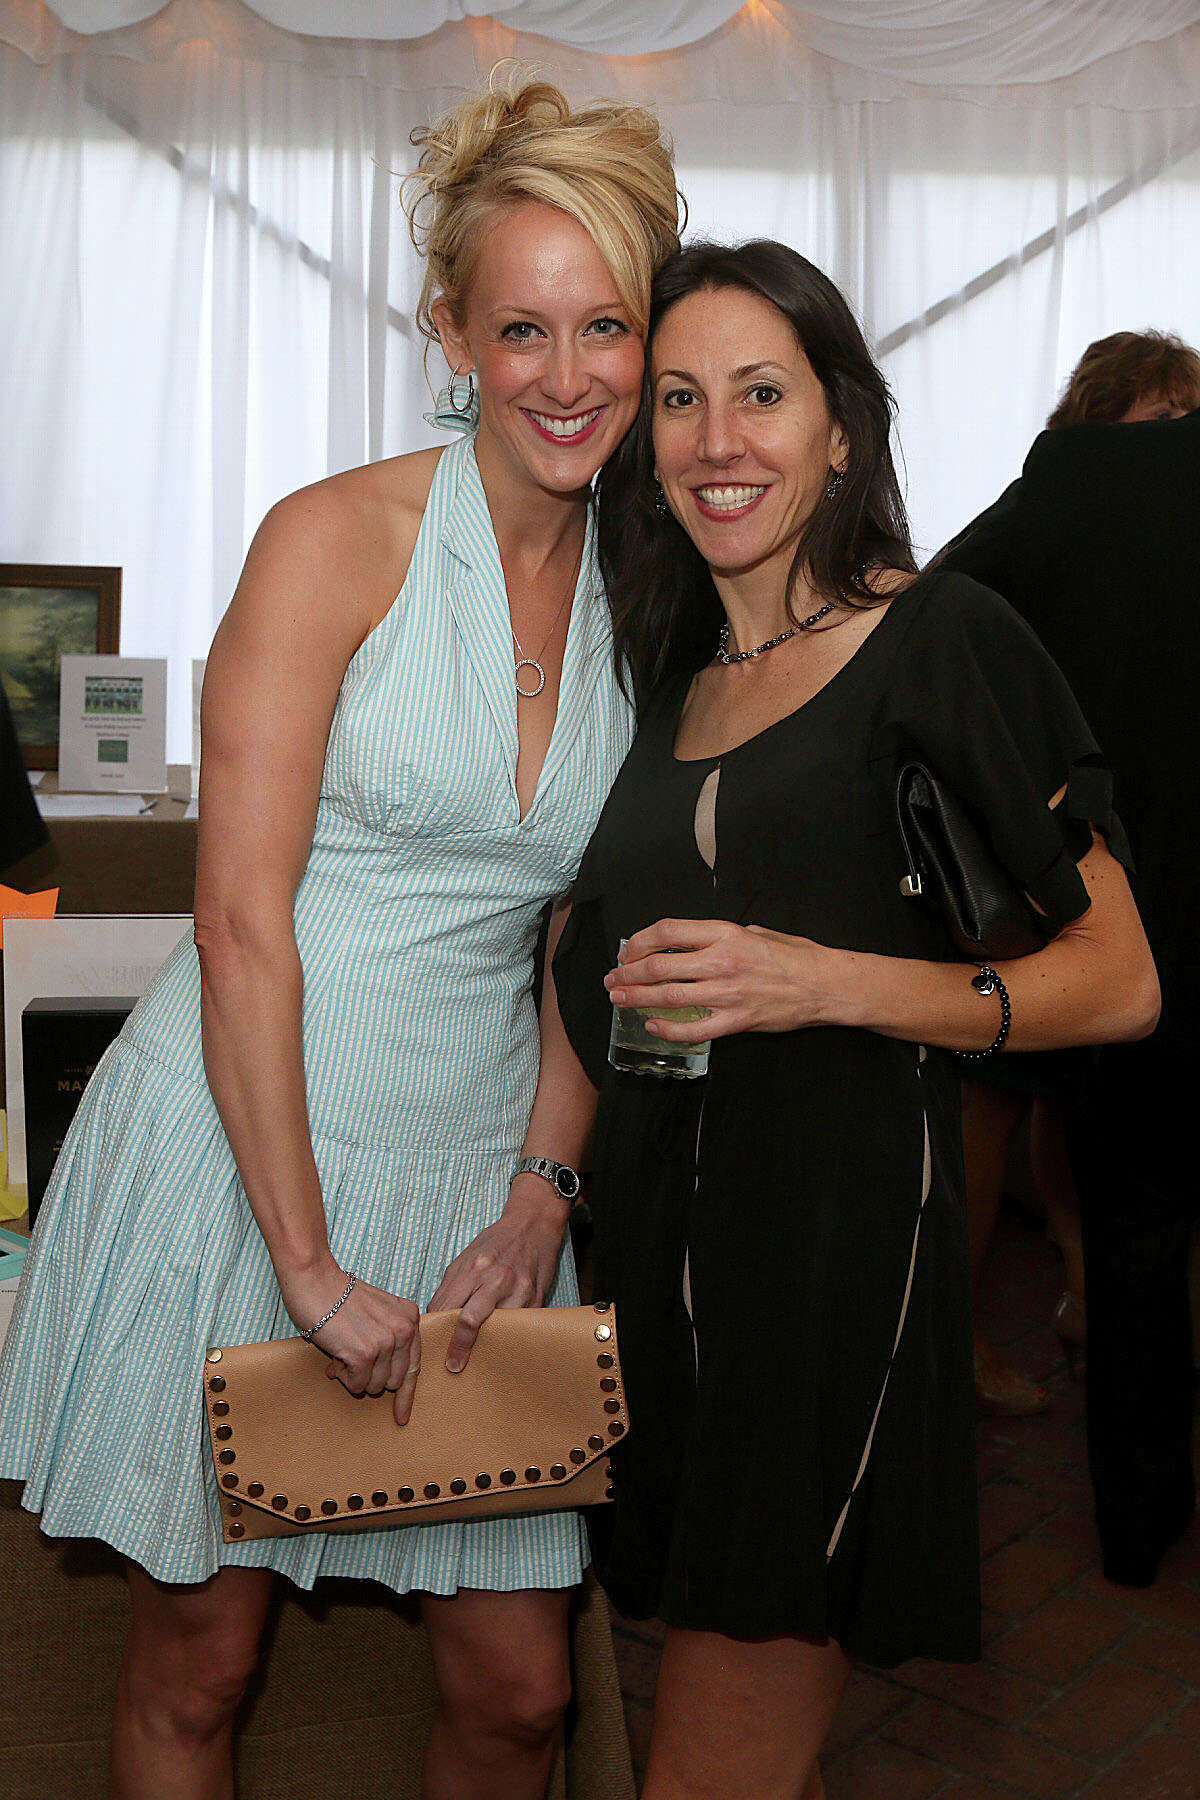 Were you Seen at the Fourth Annual Music & Mingling event at the Saratoga Polo Field in Saratoga Springs on Thursday, May 29, 2014? The event is a fundraiser for the Adult & Senior Center of Saratoga.